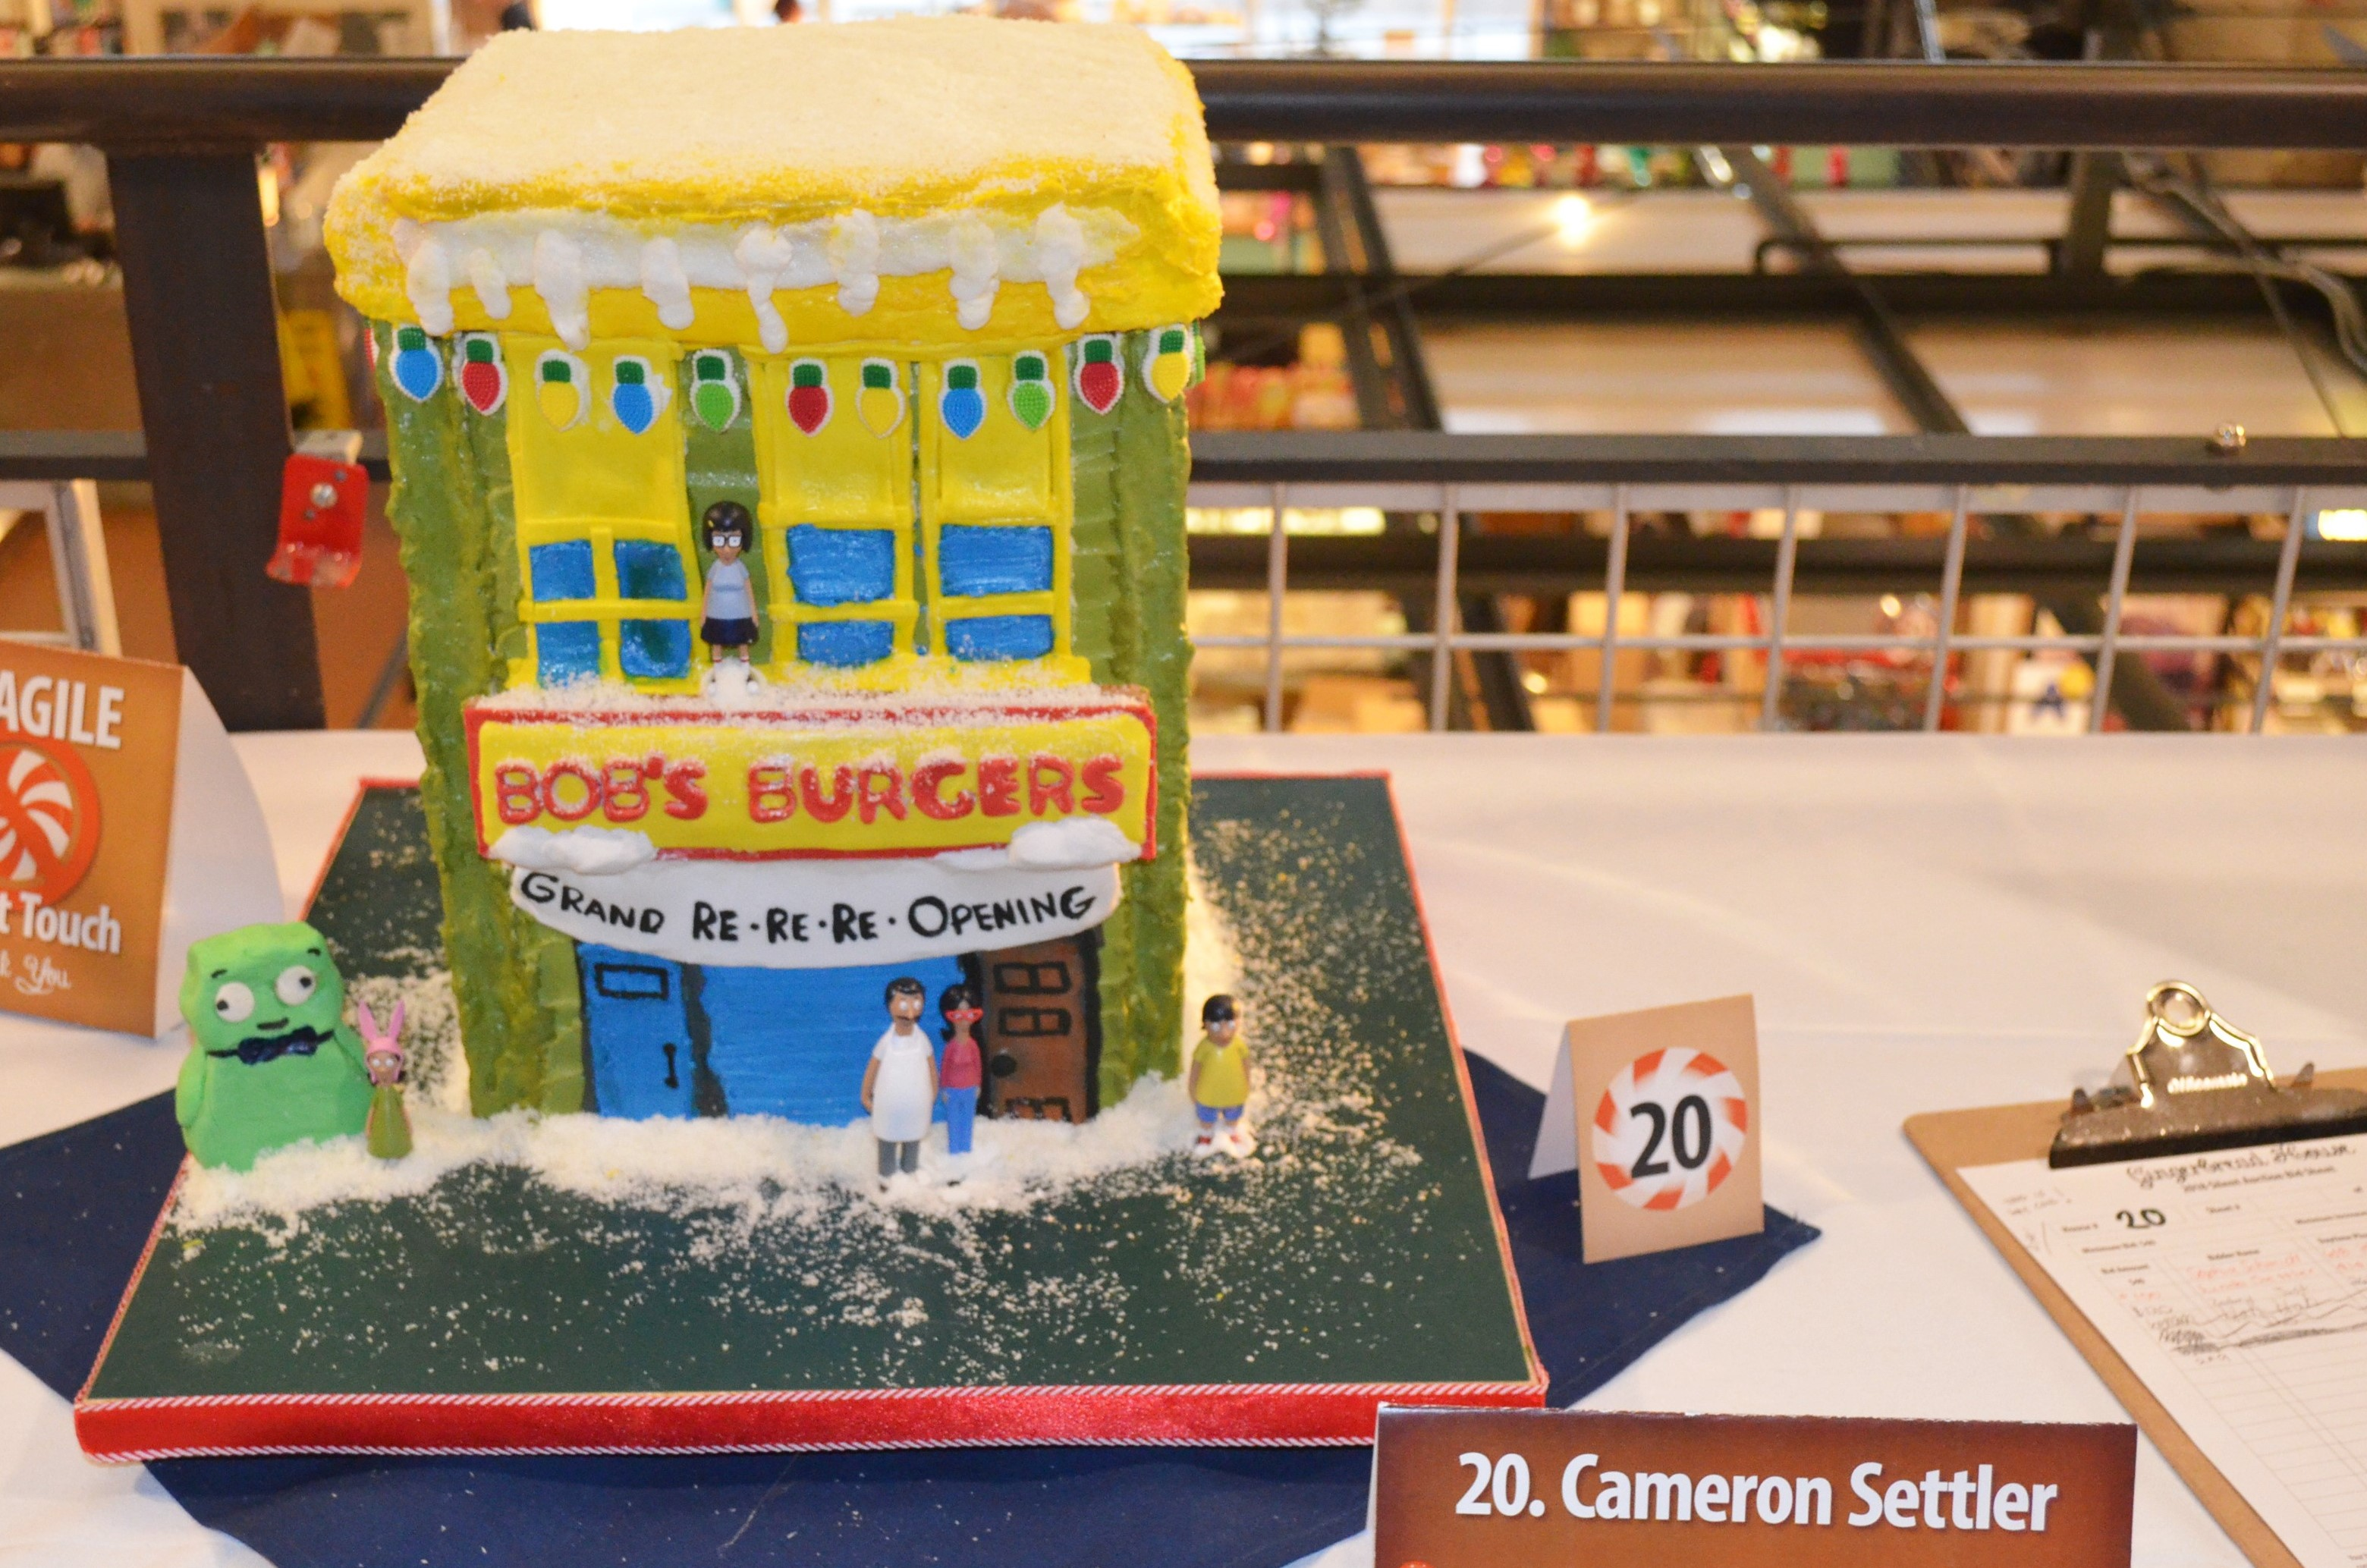 Bob's Burgers gingerbread house by Cameron Settler. Photo by Jack Fennimore.